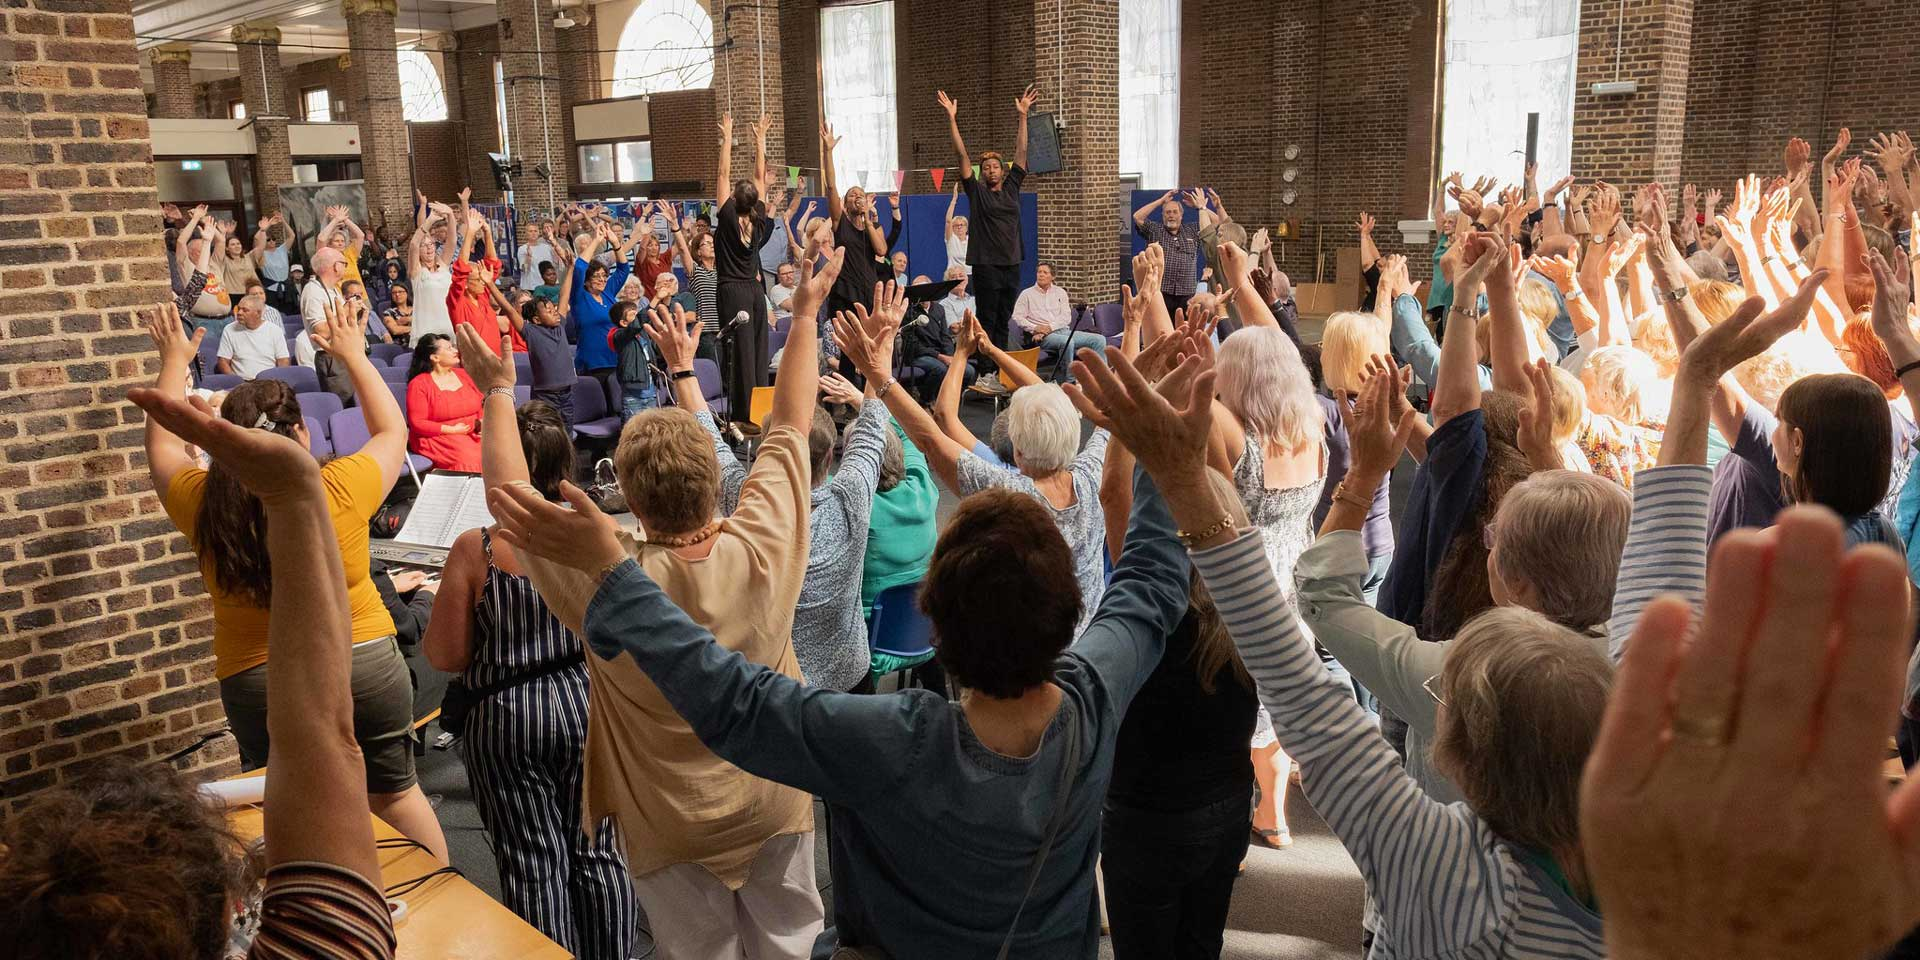 Community group cheering with hands in the air